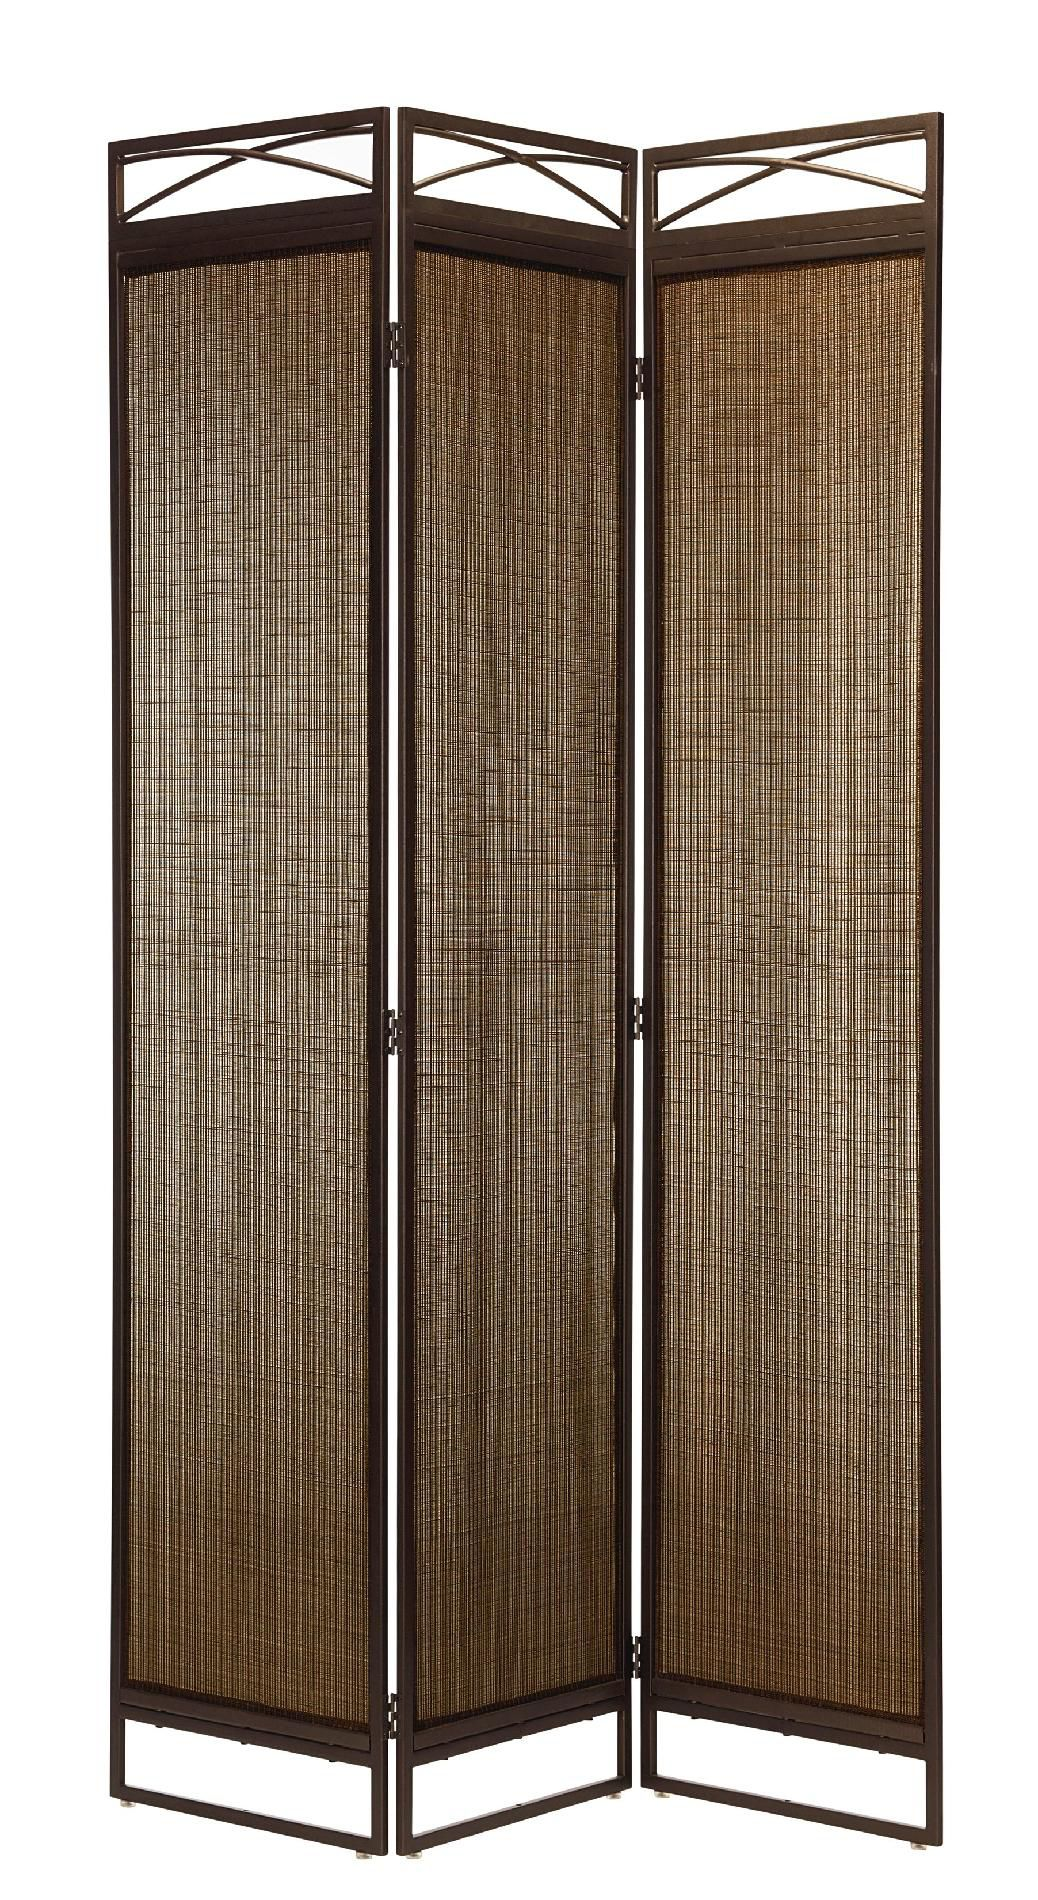 Garden Oasis Brown Sling 3 Panel Screen* Limited Availability